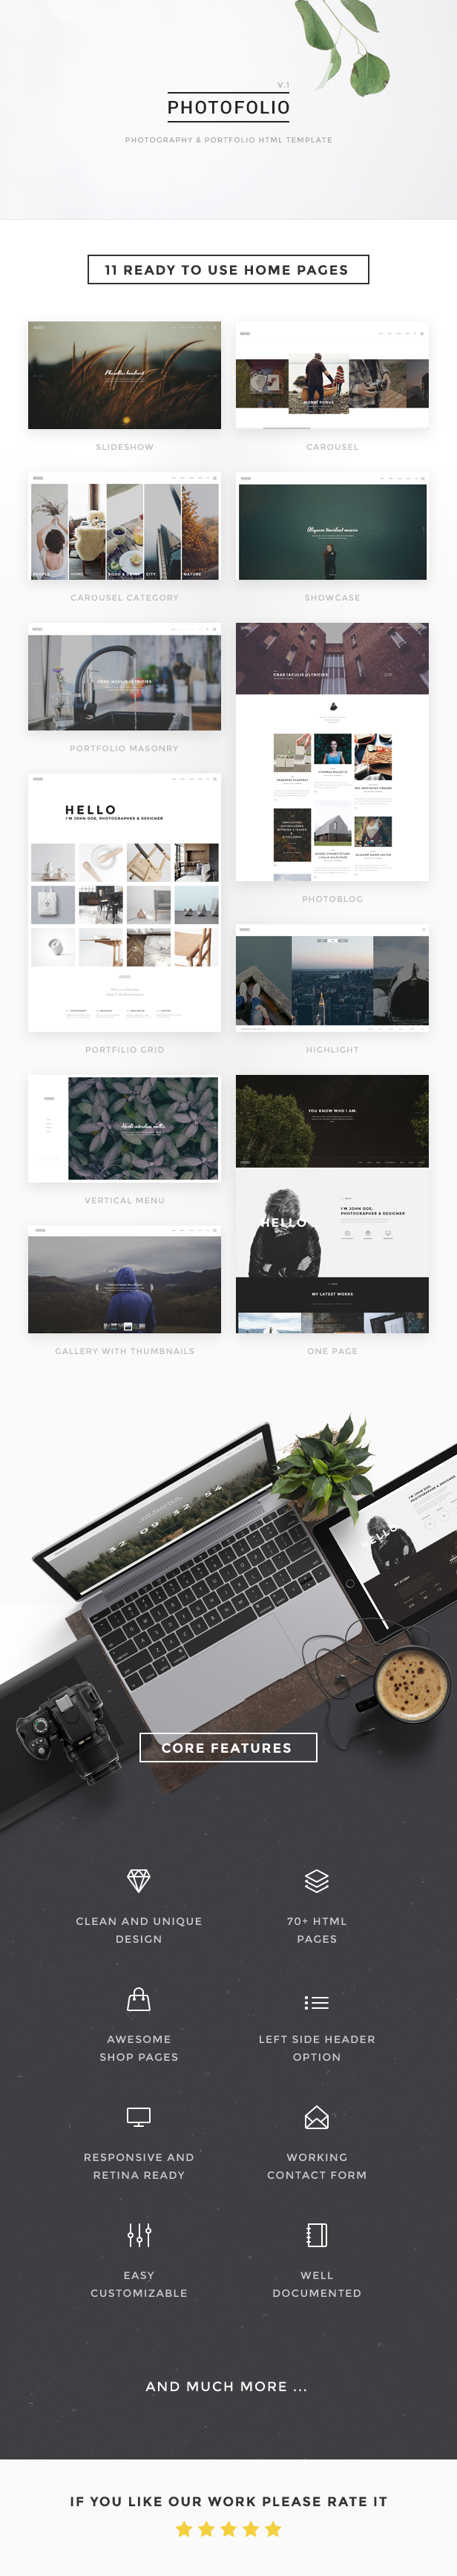 Photofolio photography portfolio html template photography photofolio by nunforest httpsthemeforestitemphotofolio photography ppt templatehtml toneelgroepblik Images